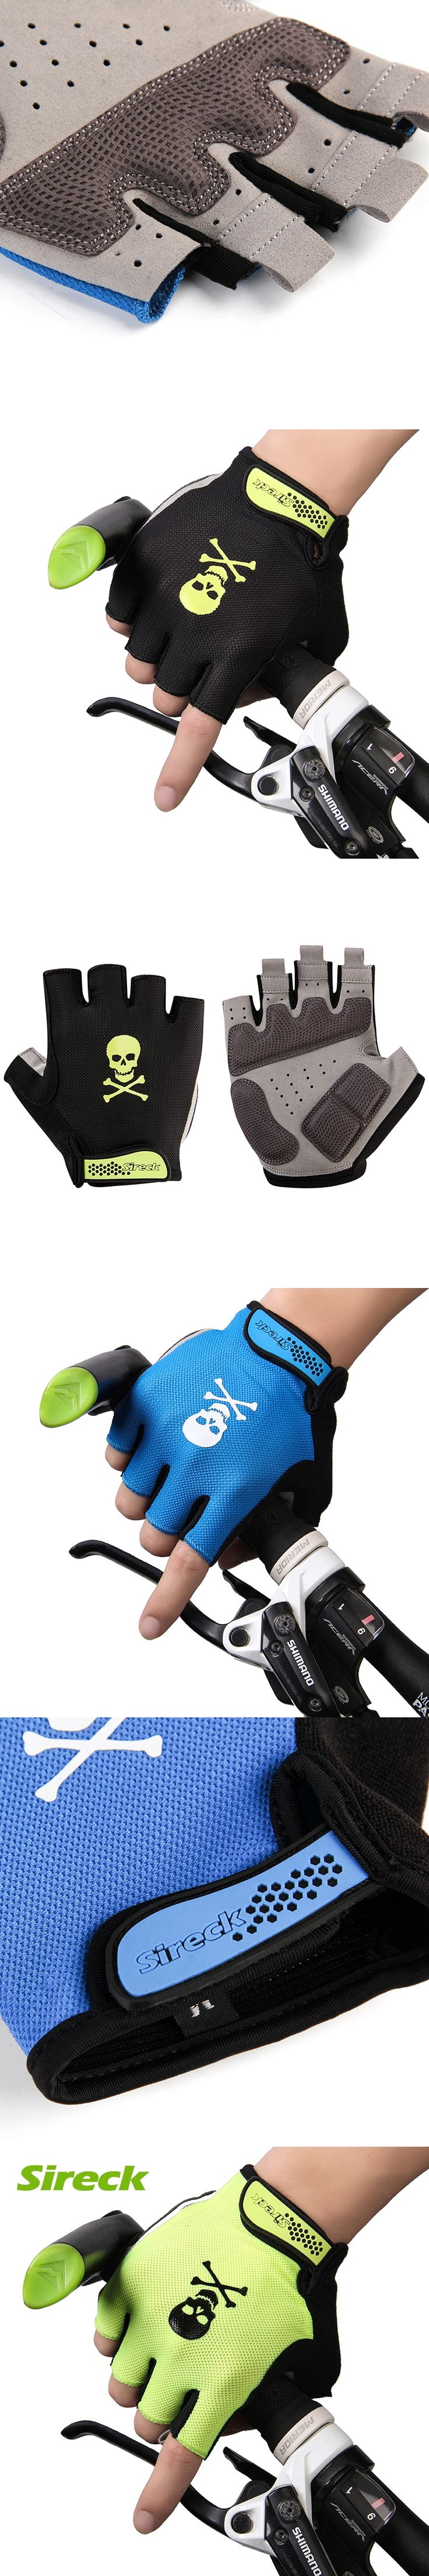 Sireck Summer Cycling Gloves Men Half Finger MTB Road Bike Gloves Gel Padded Shockproof Sports Bicycle Gloves Guantes Ciclismo